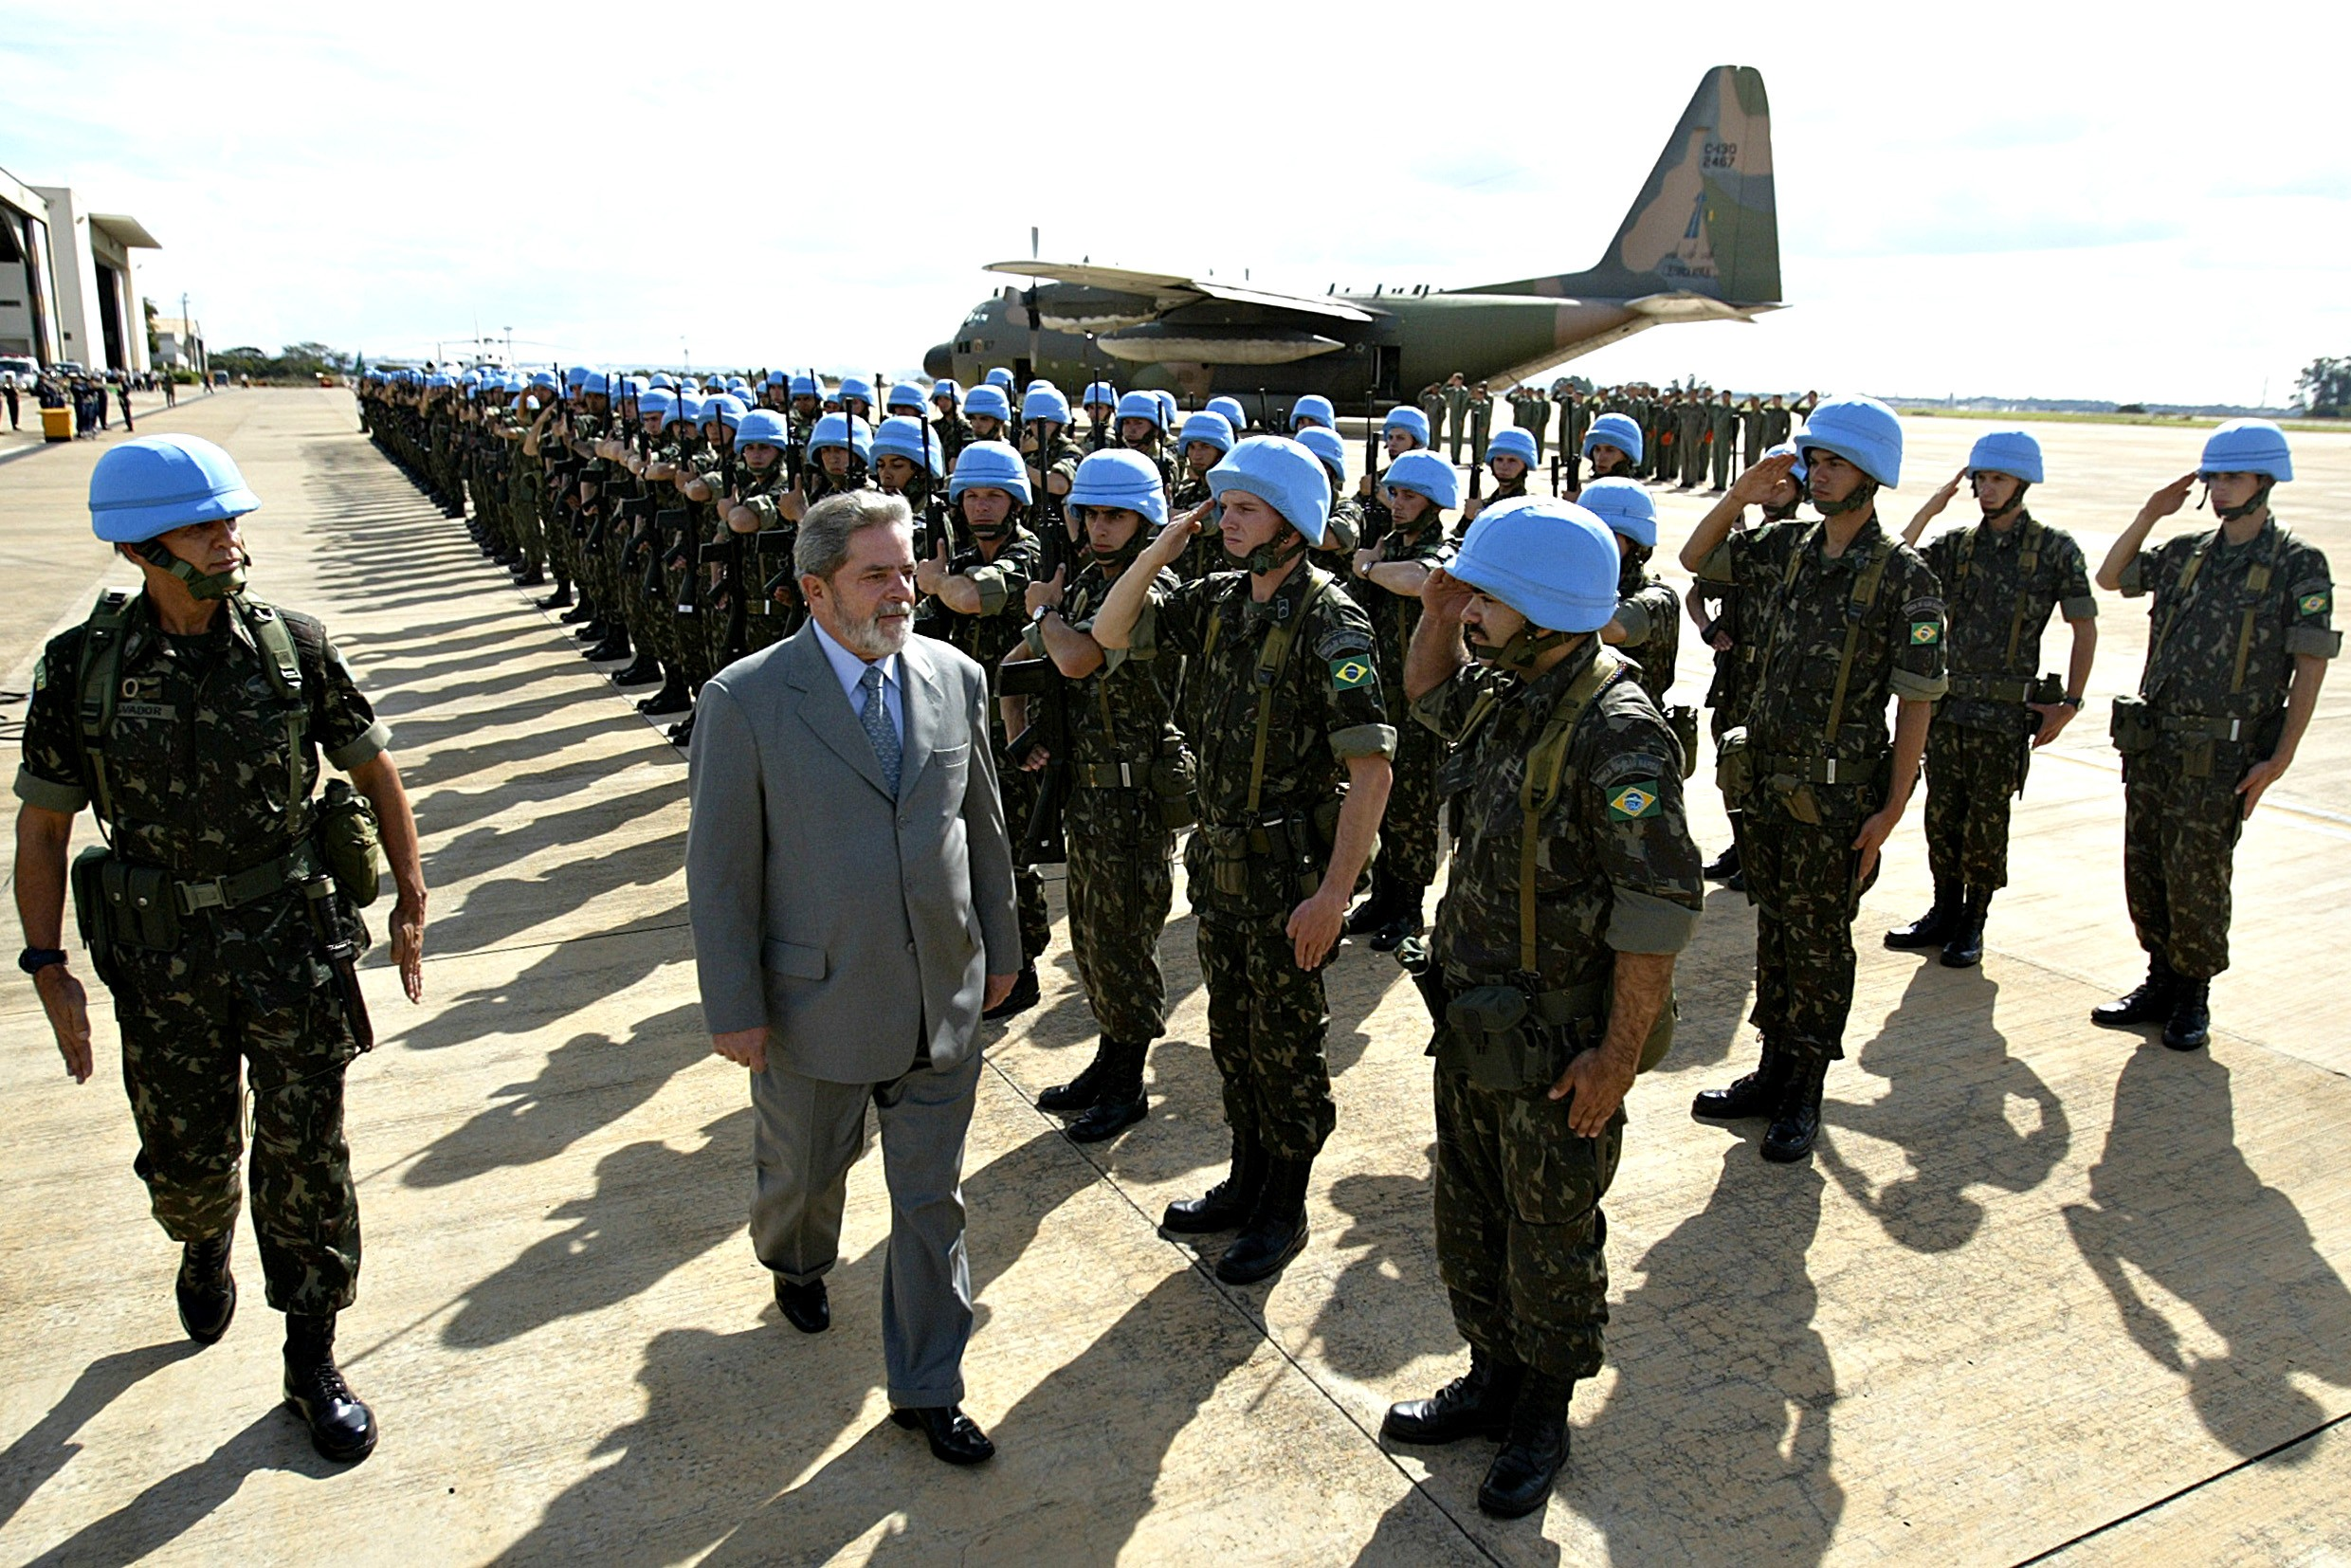 Despite numerous reported, and un-prosecuted, cases of sexual assault against native civilians, the U.N. continues to use private, military contractors to procure peacekeepers. (Photo credit: Wikipedia Commons)